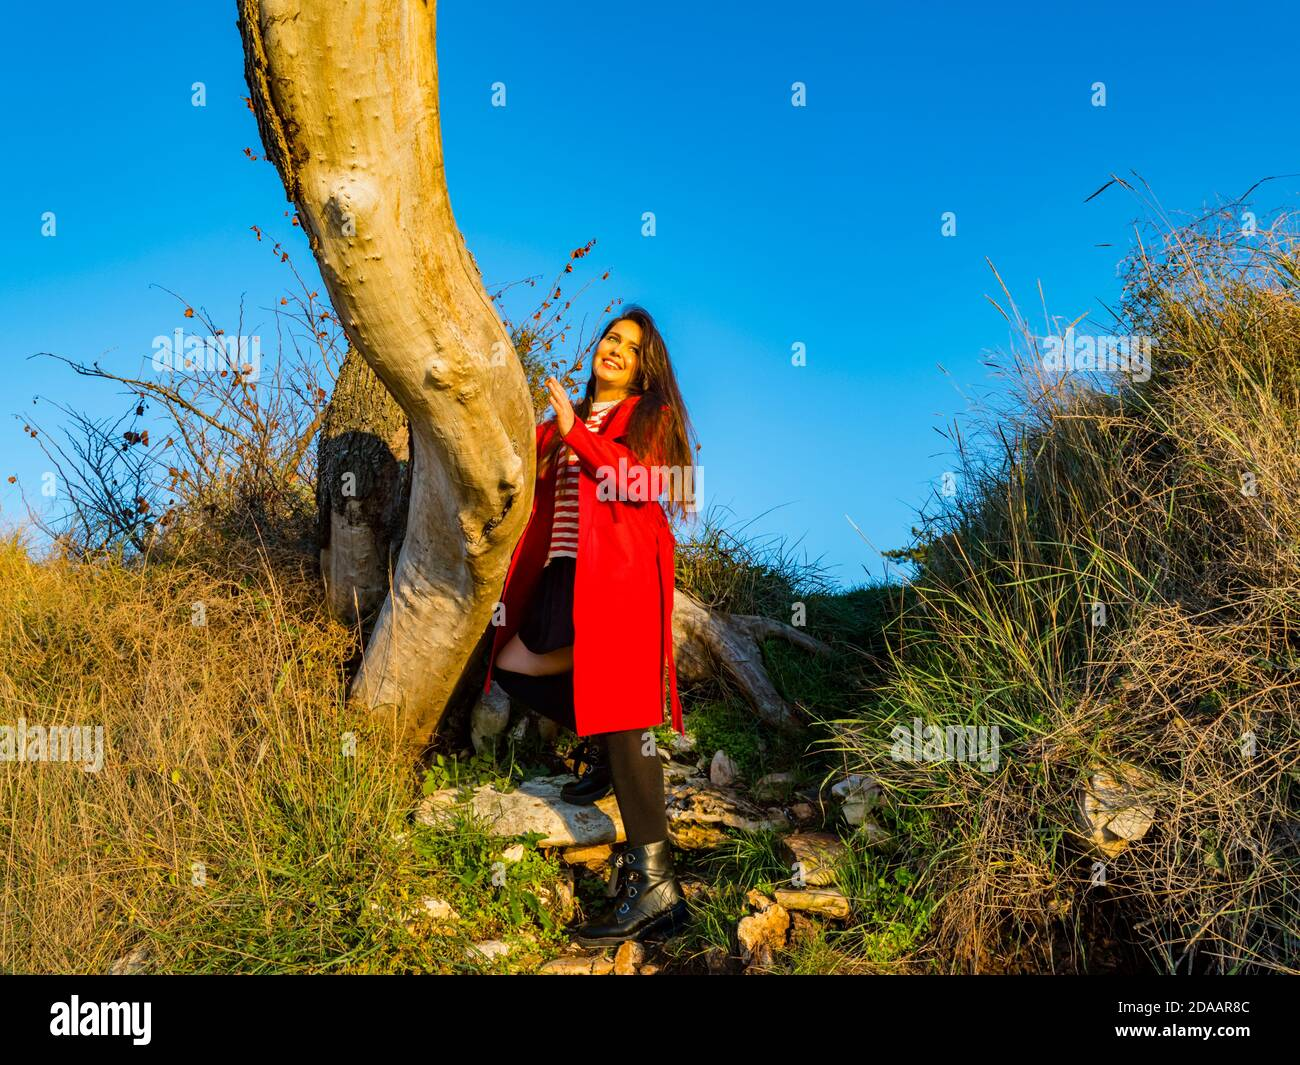 Young woman happiness natural environment inclined on tree warm sunset light Stock Photo